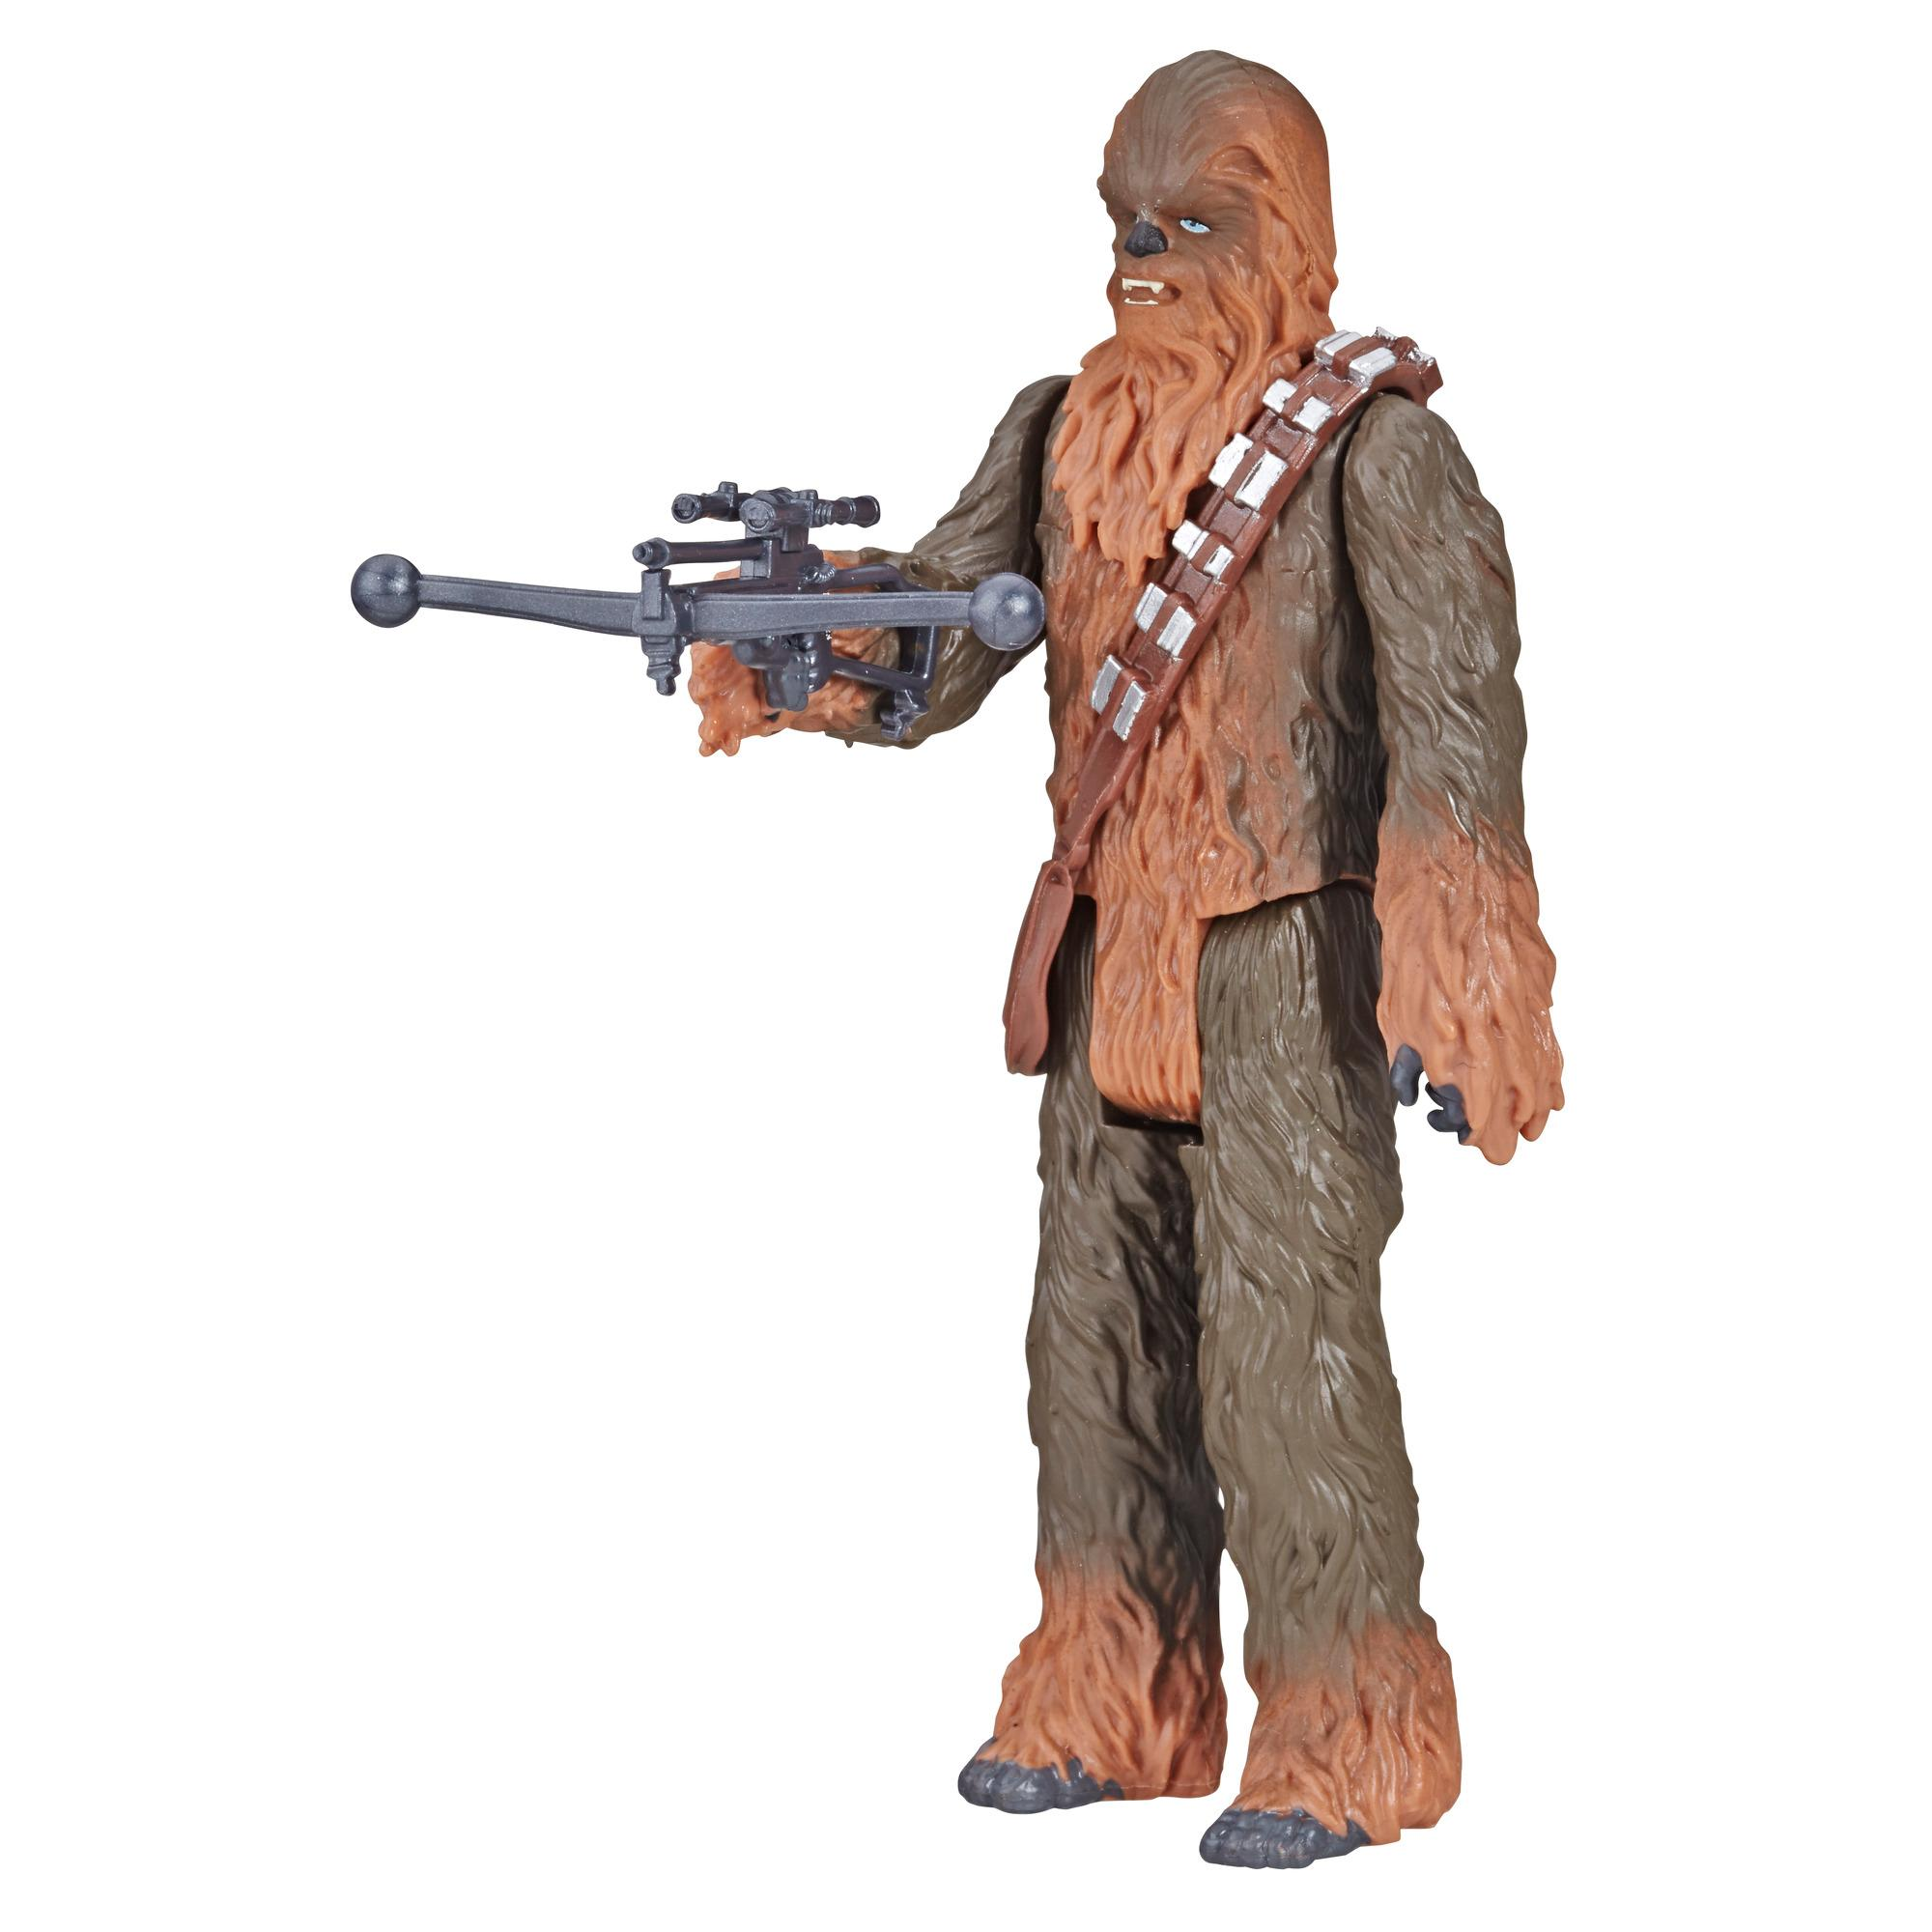 Star Wars Galaxy of Adventures Chewbacca Figure and Mini Comic